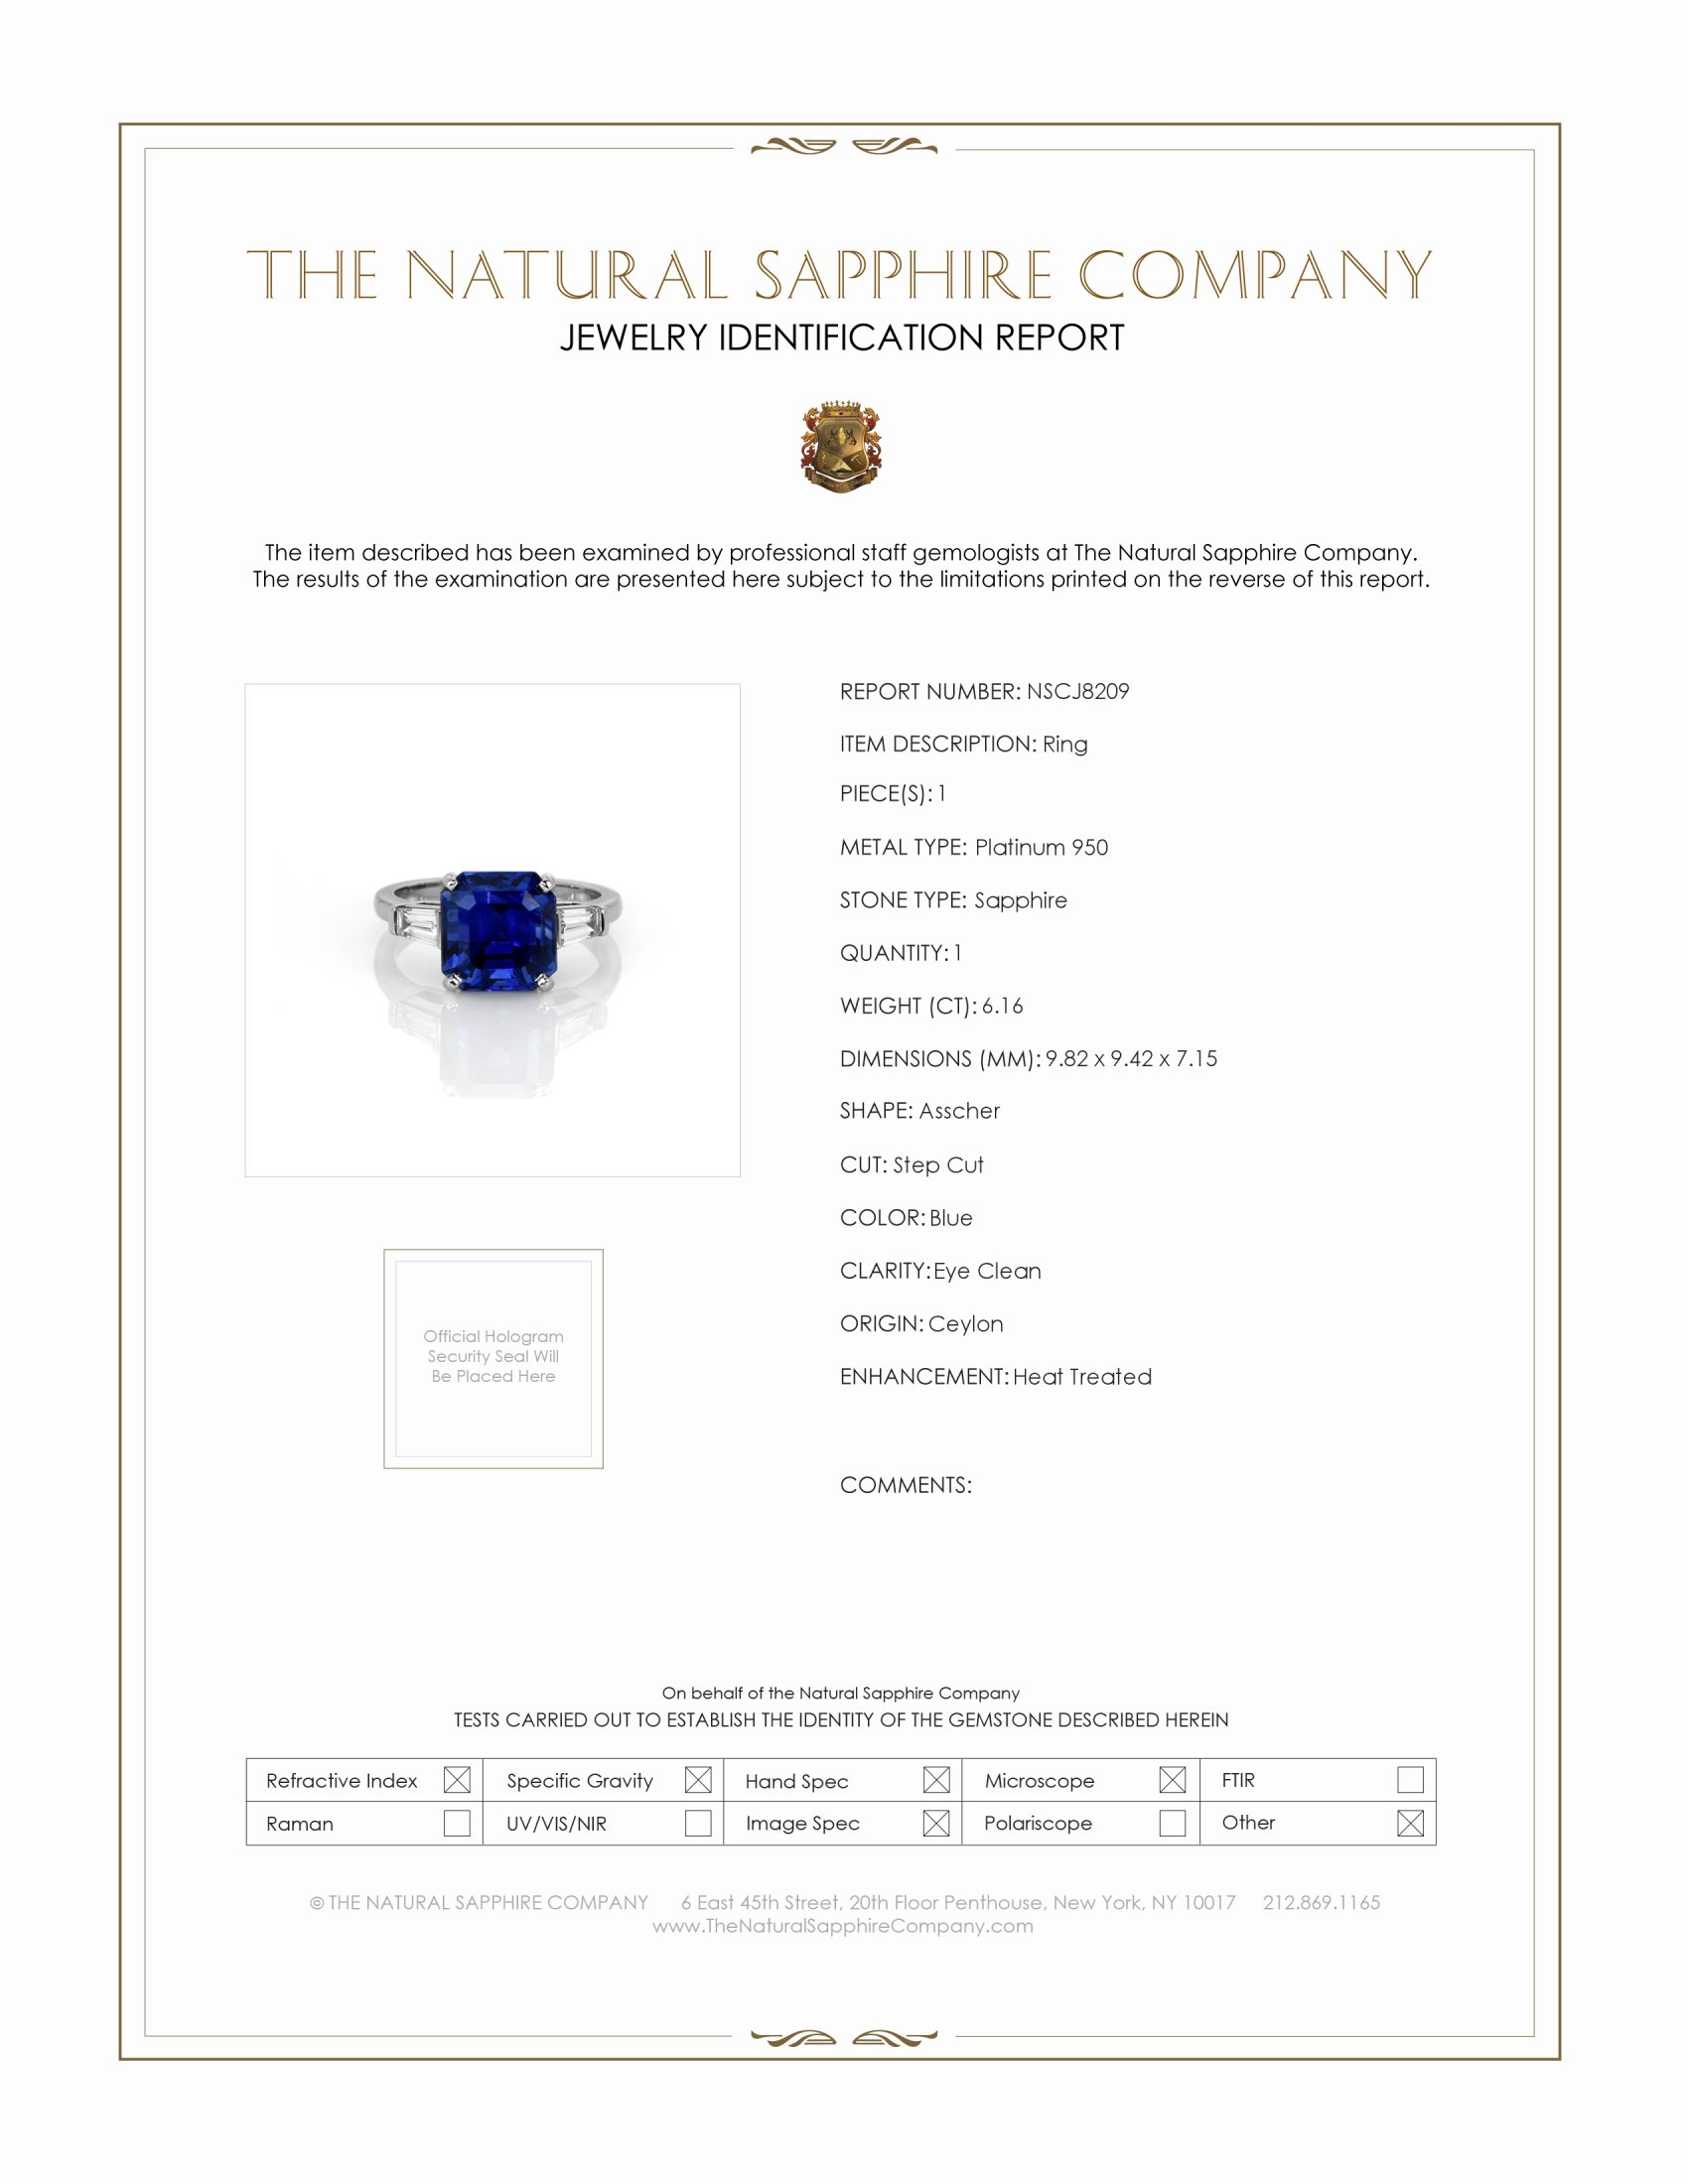 6.16ct Blue Sapphire Ring Certification